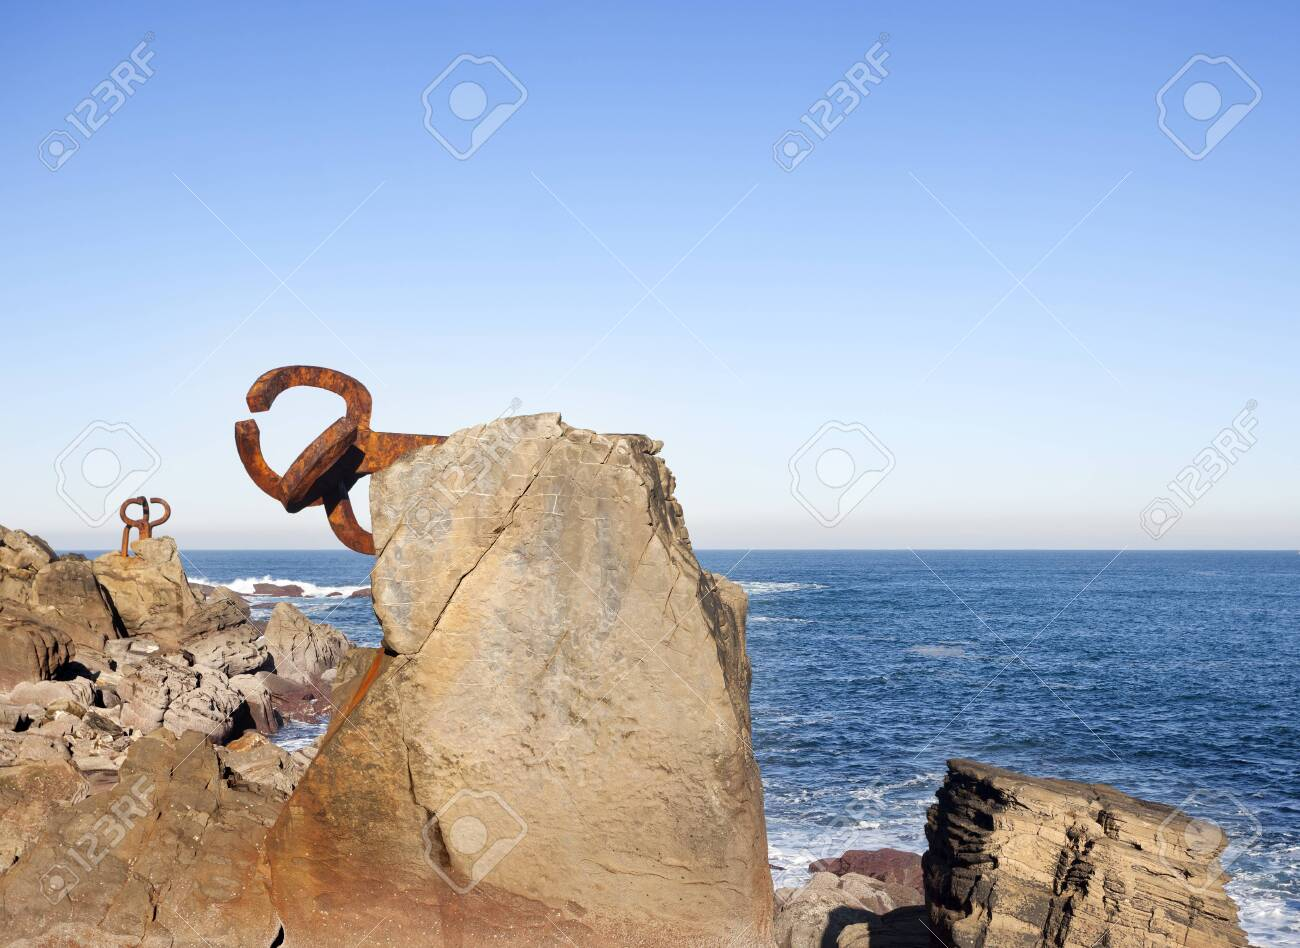 Donosti, Spain-December 22, 2014: On sunny days,in the end of the la Concha beach you can see Chillida's sculptures - 121836733